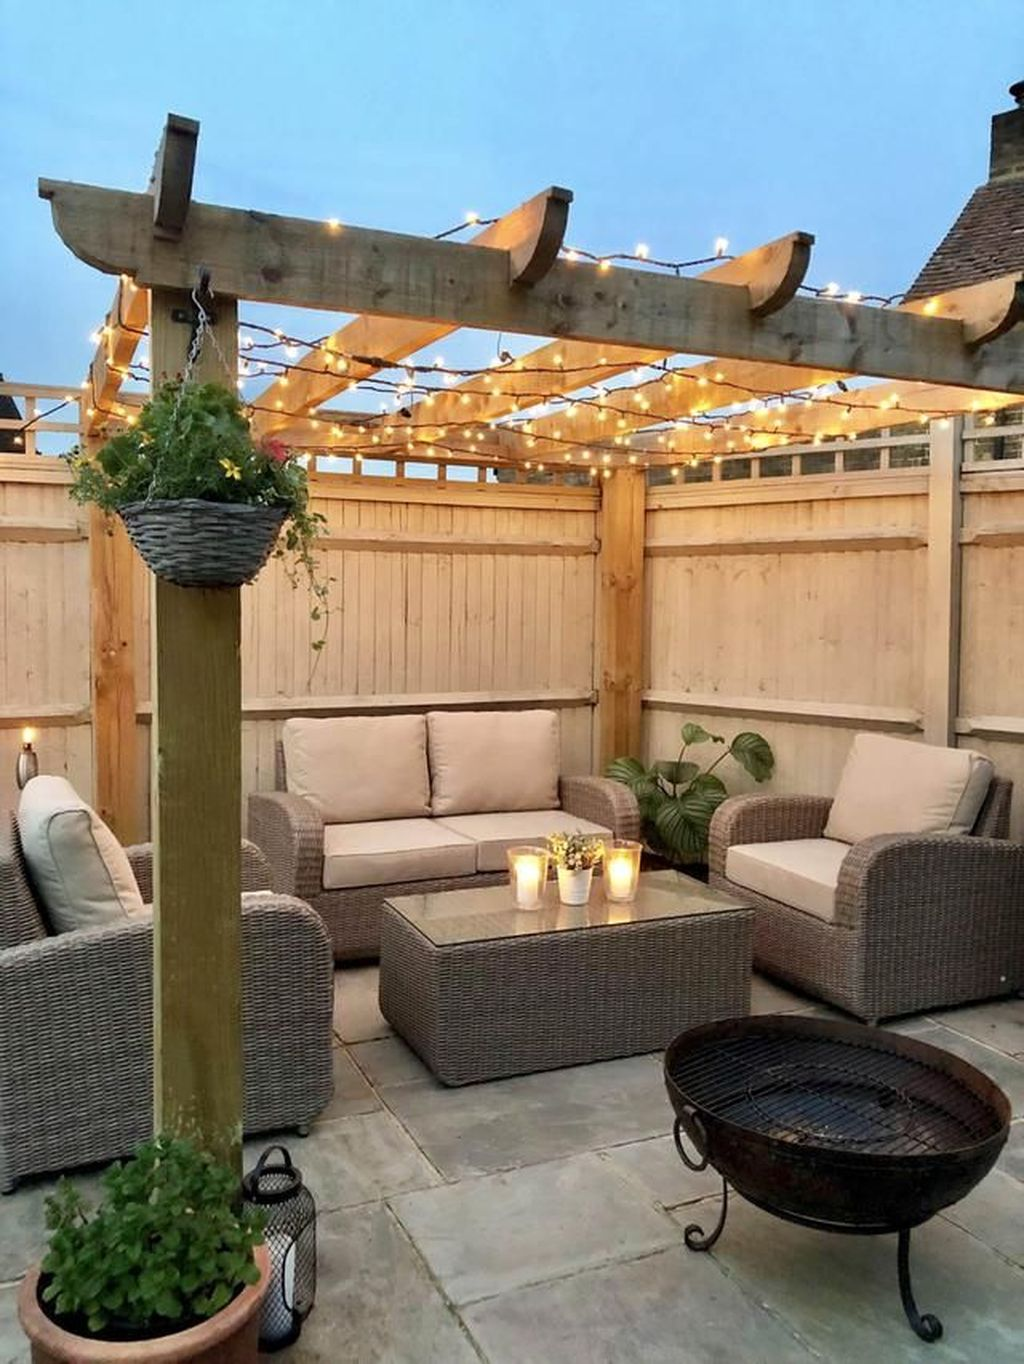 Admirable Cozy Patio Design Ideas To Relaxing On A Sunny Day 09